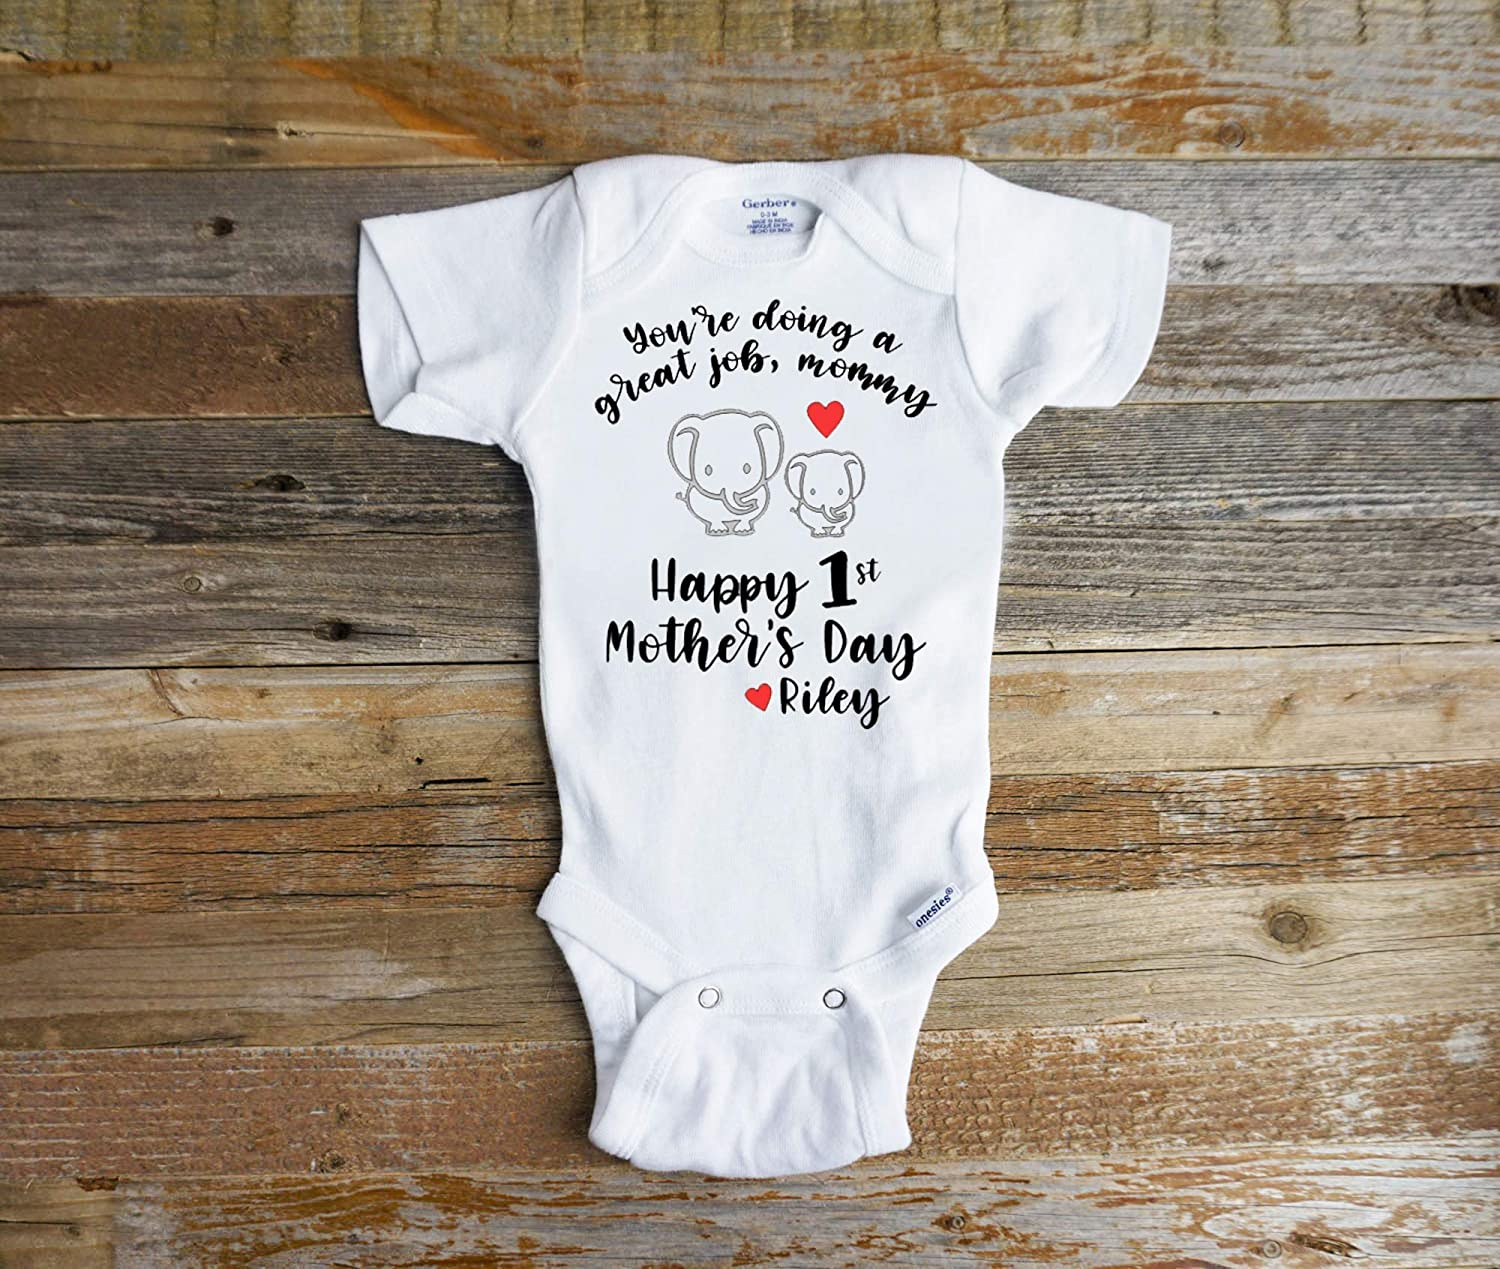 Free Drukarstwo i grafika this cute print baby elephant for mommy and me matching shirts my first mother's day for family shirt is perfect for a mama and baby who wants to. Amazon Com You Re Doing A Great Job Mommy Happy First Mother S Day Best Mom Onesie Personalized Elephant Shirt Handmade SVG, PNG, EPS, DXF File